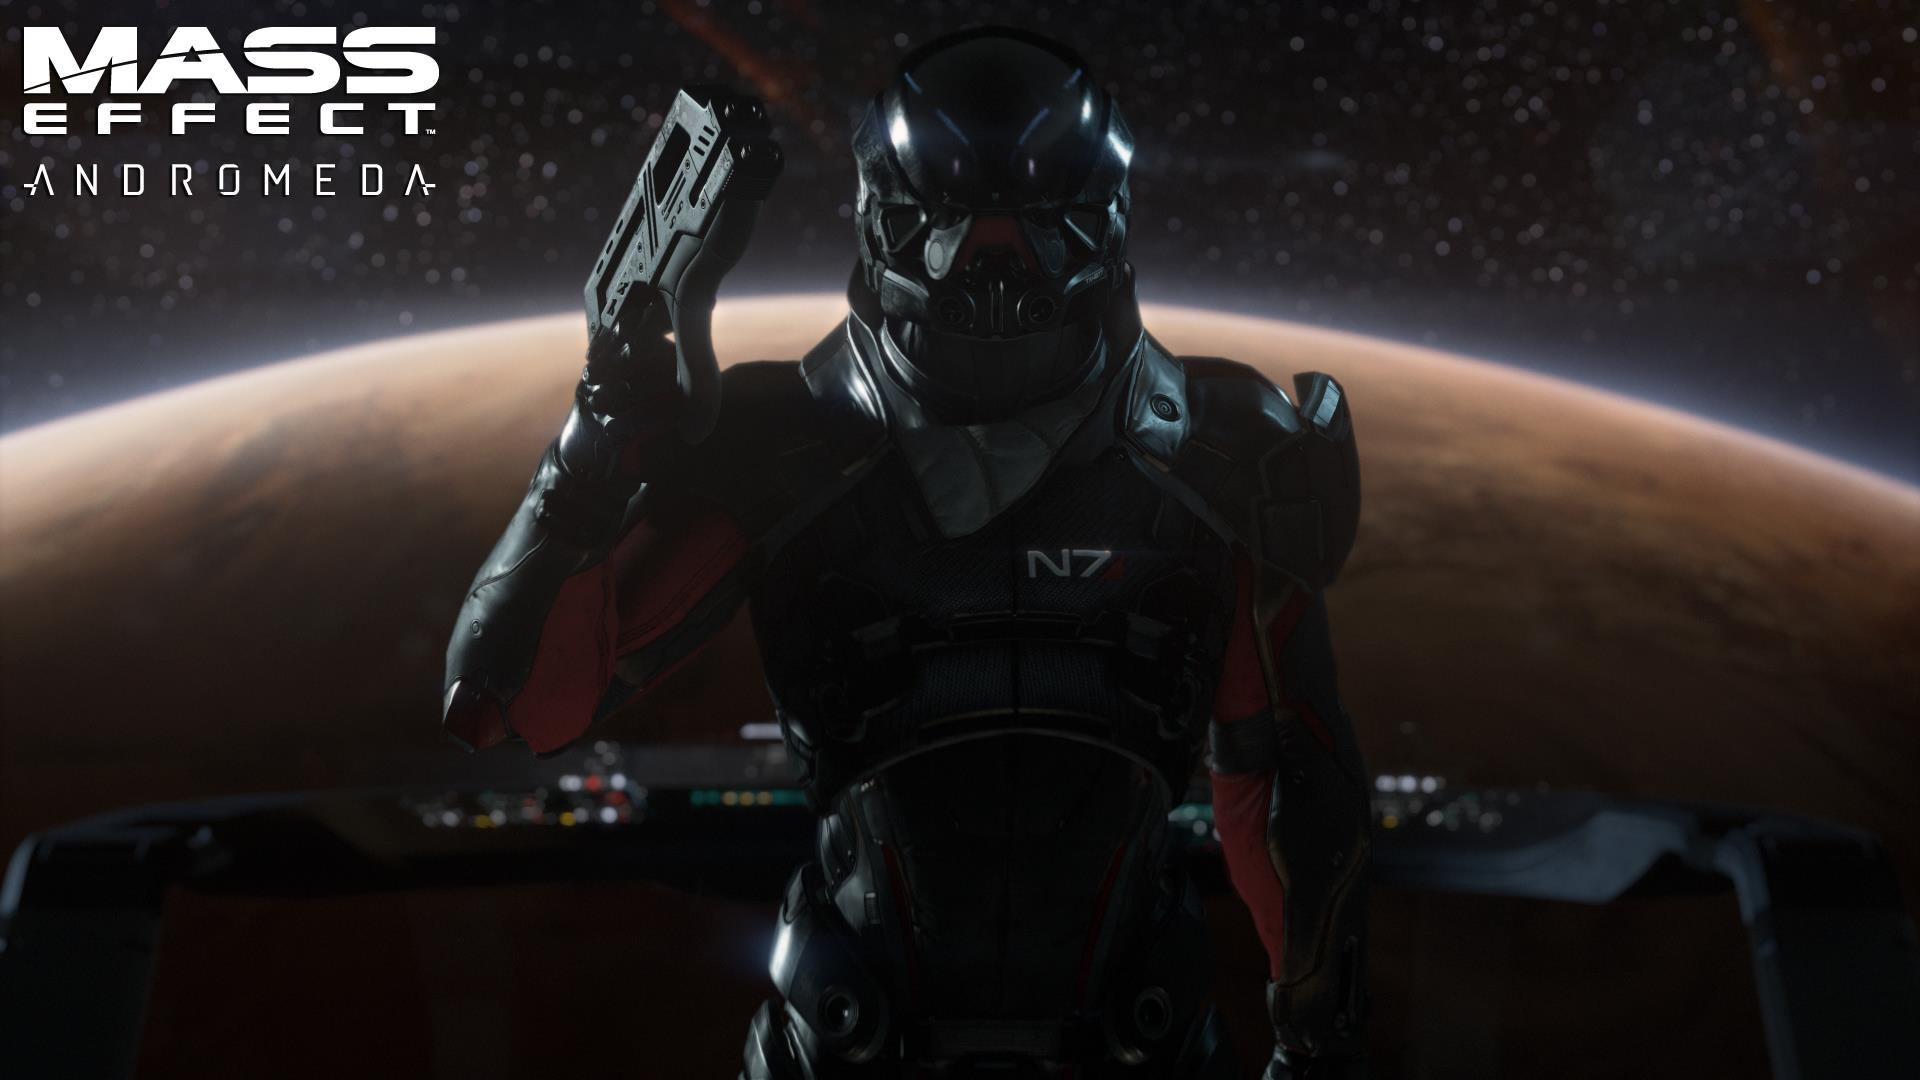 Mass Effectandromeda Mass Effect Andromeda Will Be Released In March Ars Technica